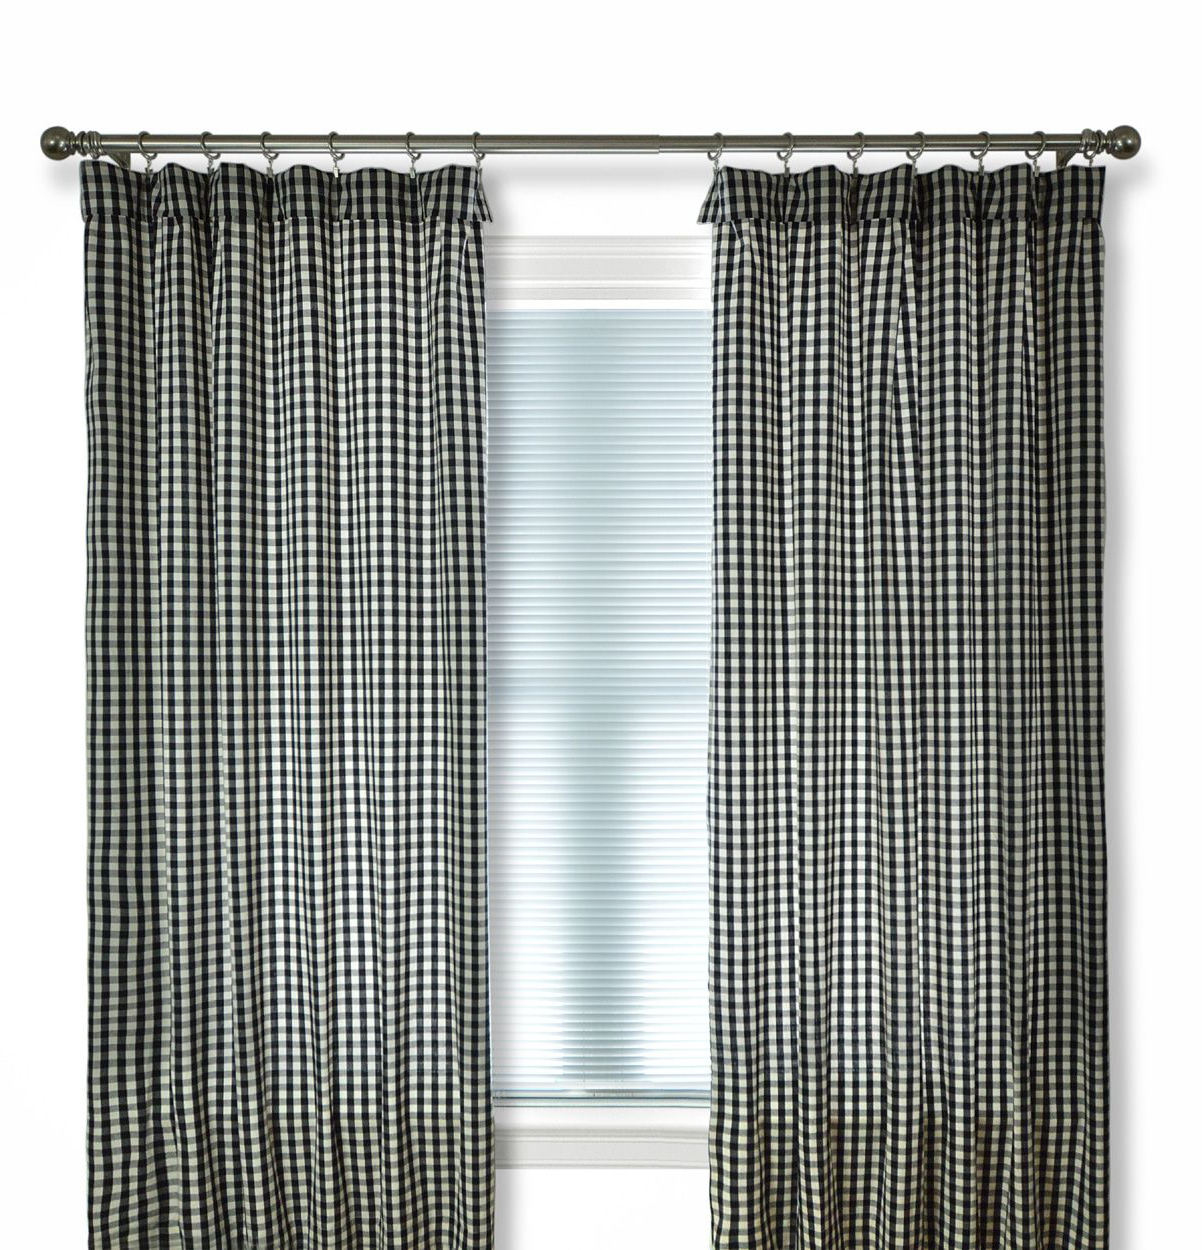 Current Tuscan Thermal Backed Blackout Curtain Panel Pairs In Rod Pocket Curtains – Thecurtainshop (View 16 of 20)